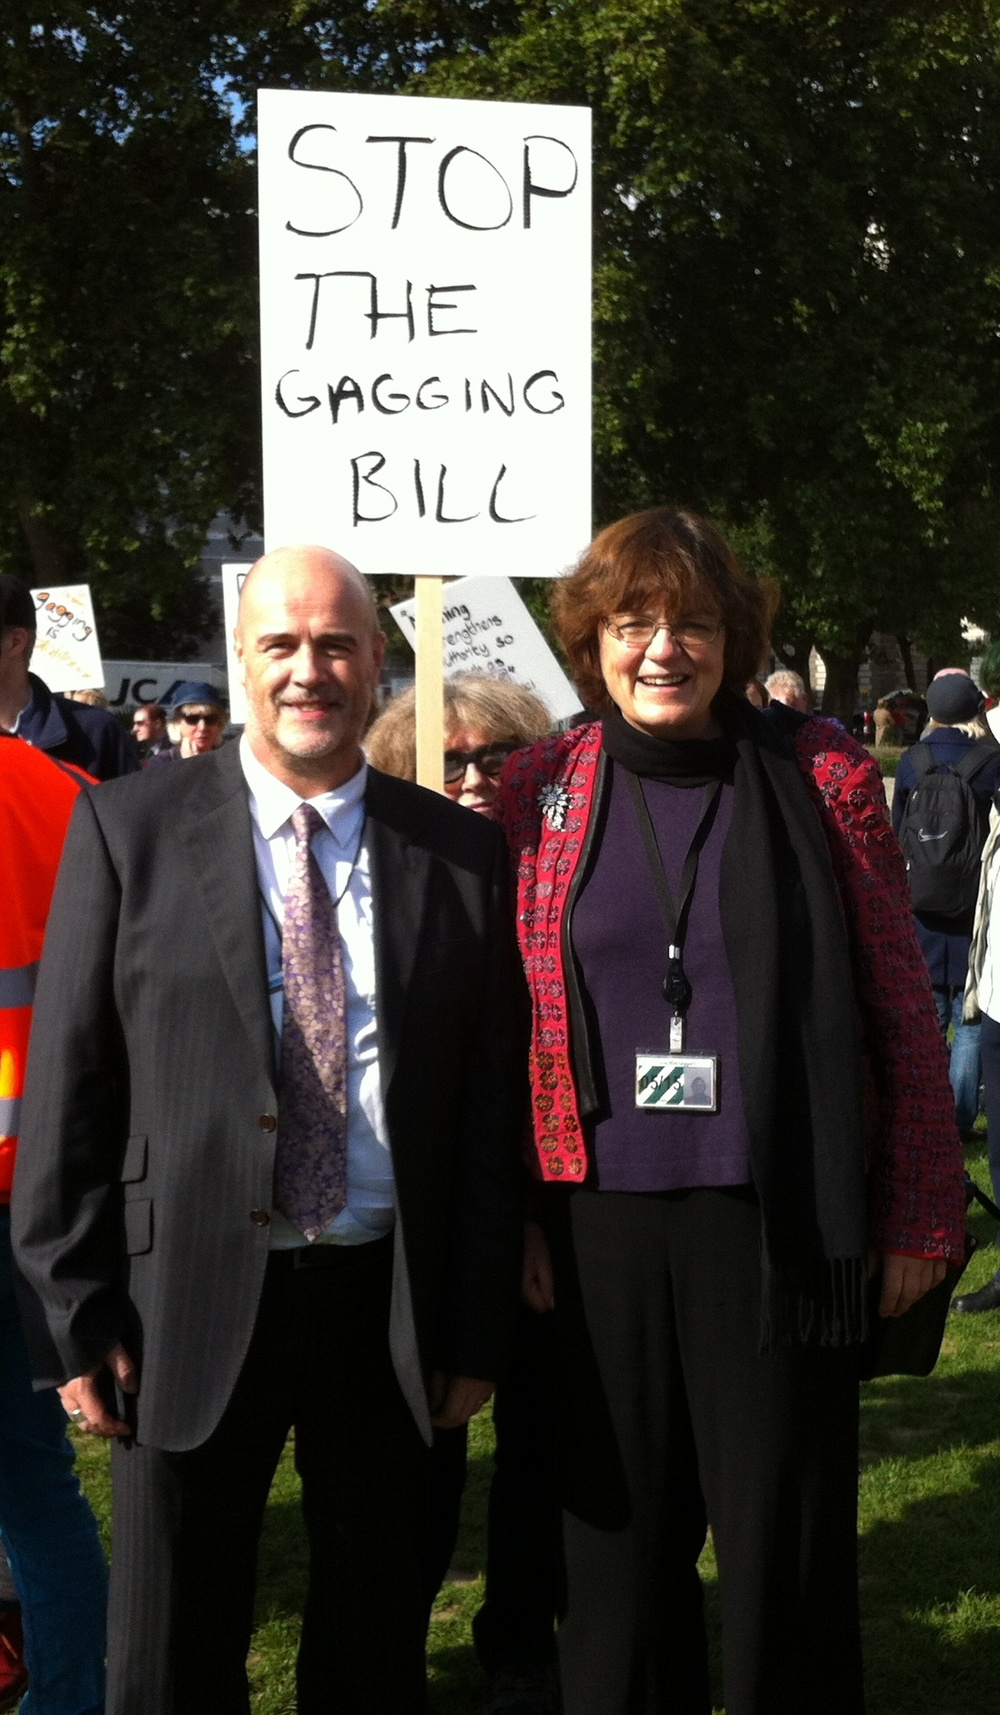 Fiona Mactaggart MP andJohn Howarth from Reading at the protest in Westminster square